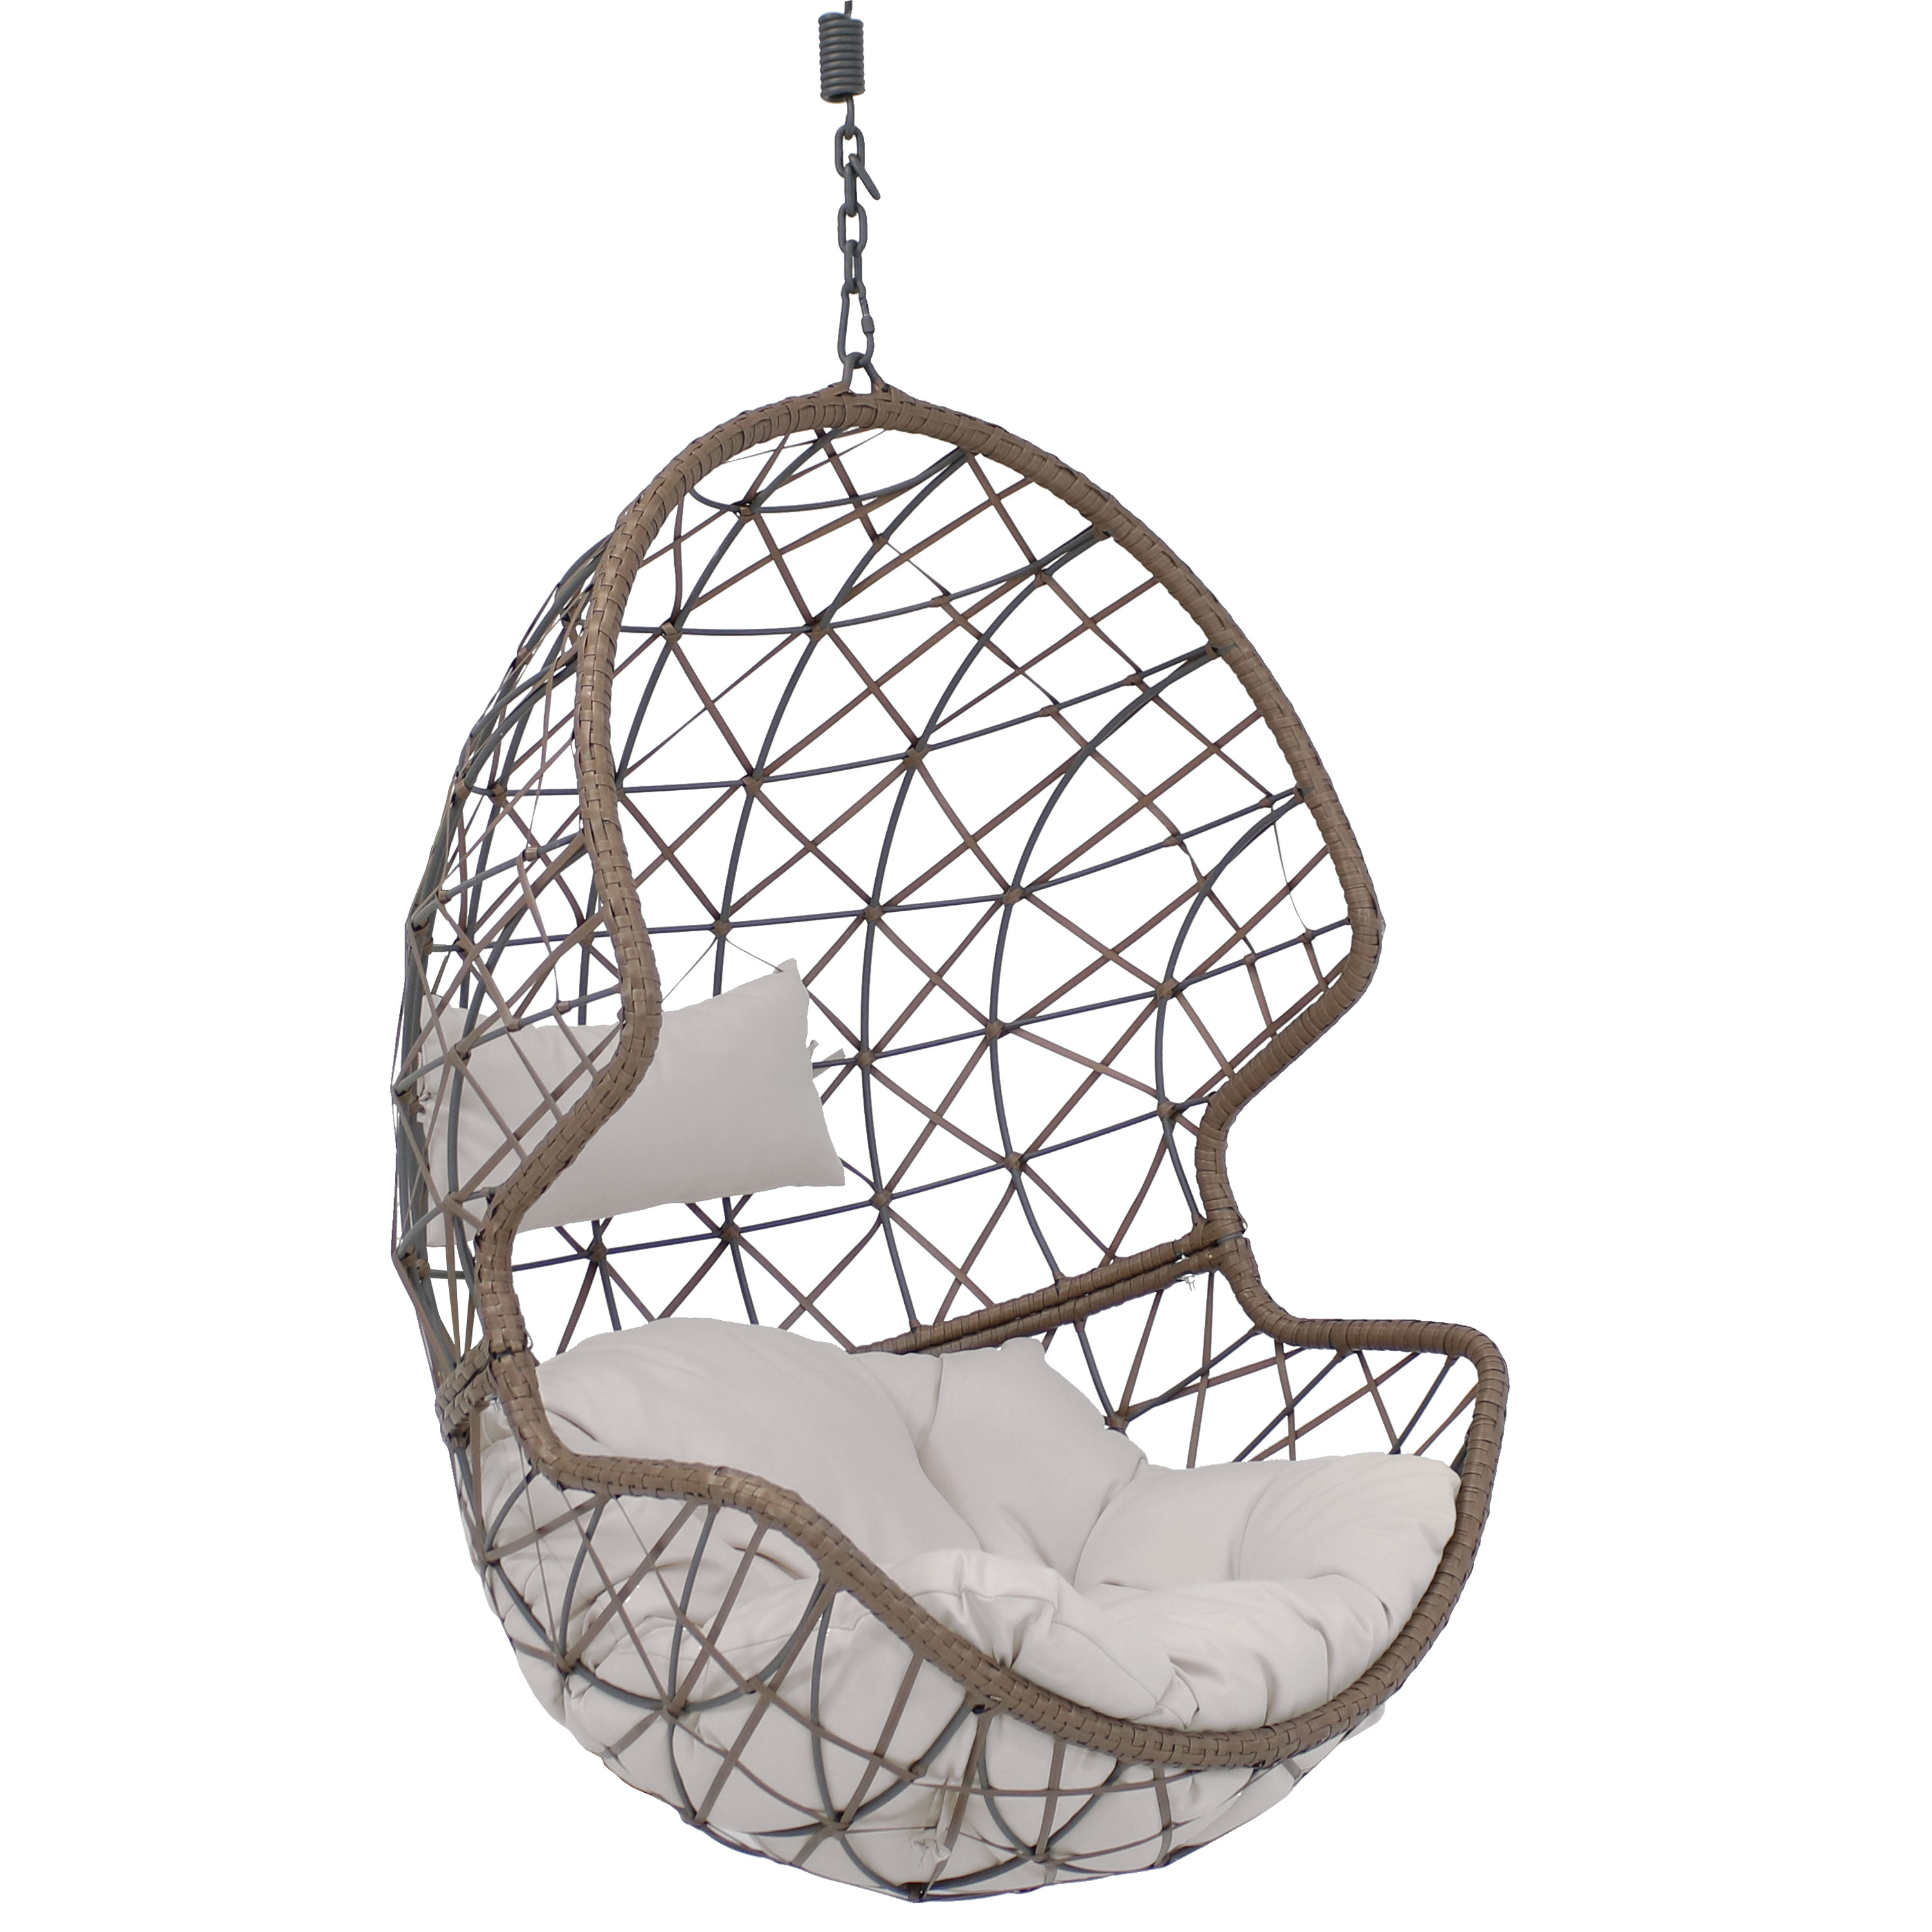 Hanging Egg Chair Swing Wicker Basket Use Gray Cushion Photo